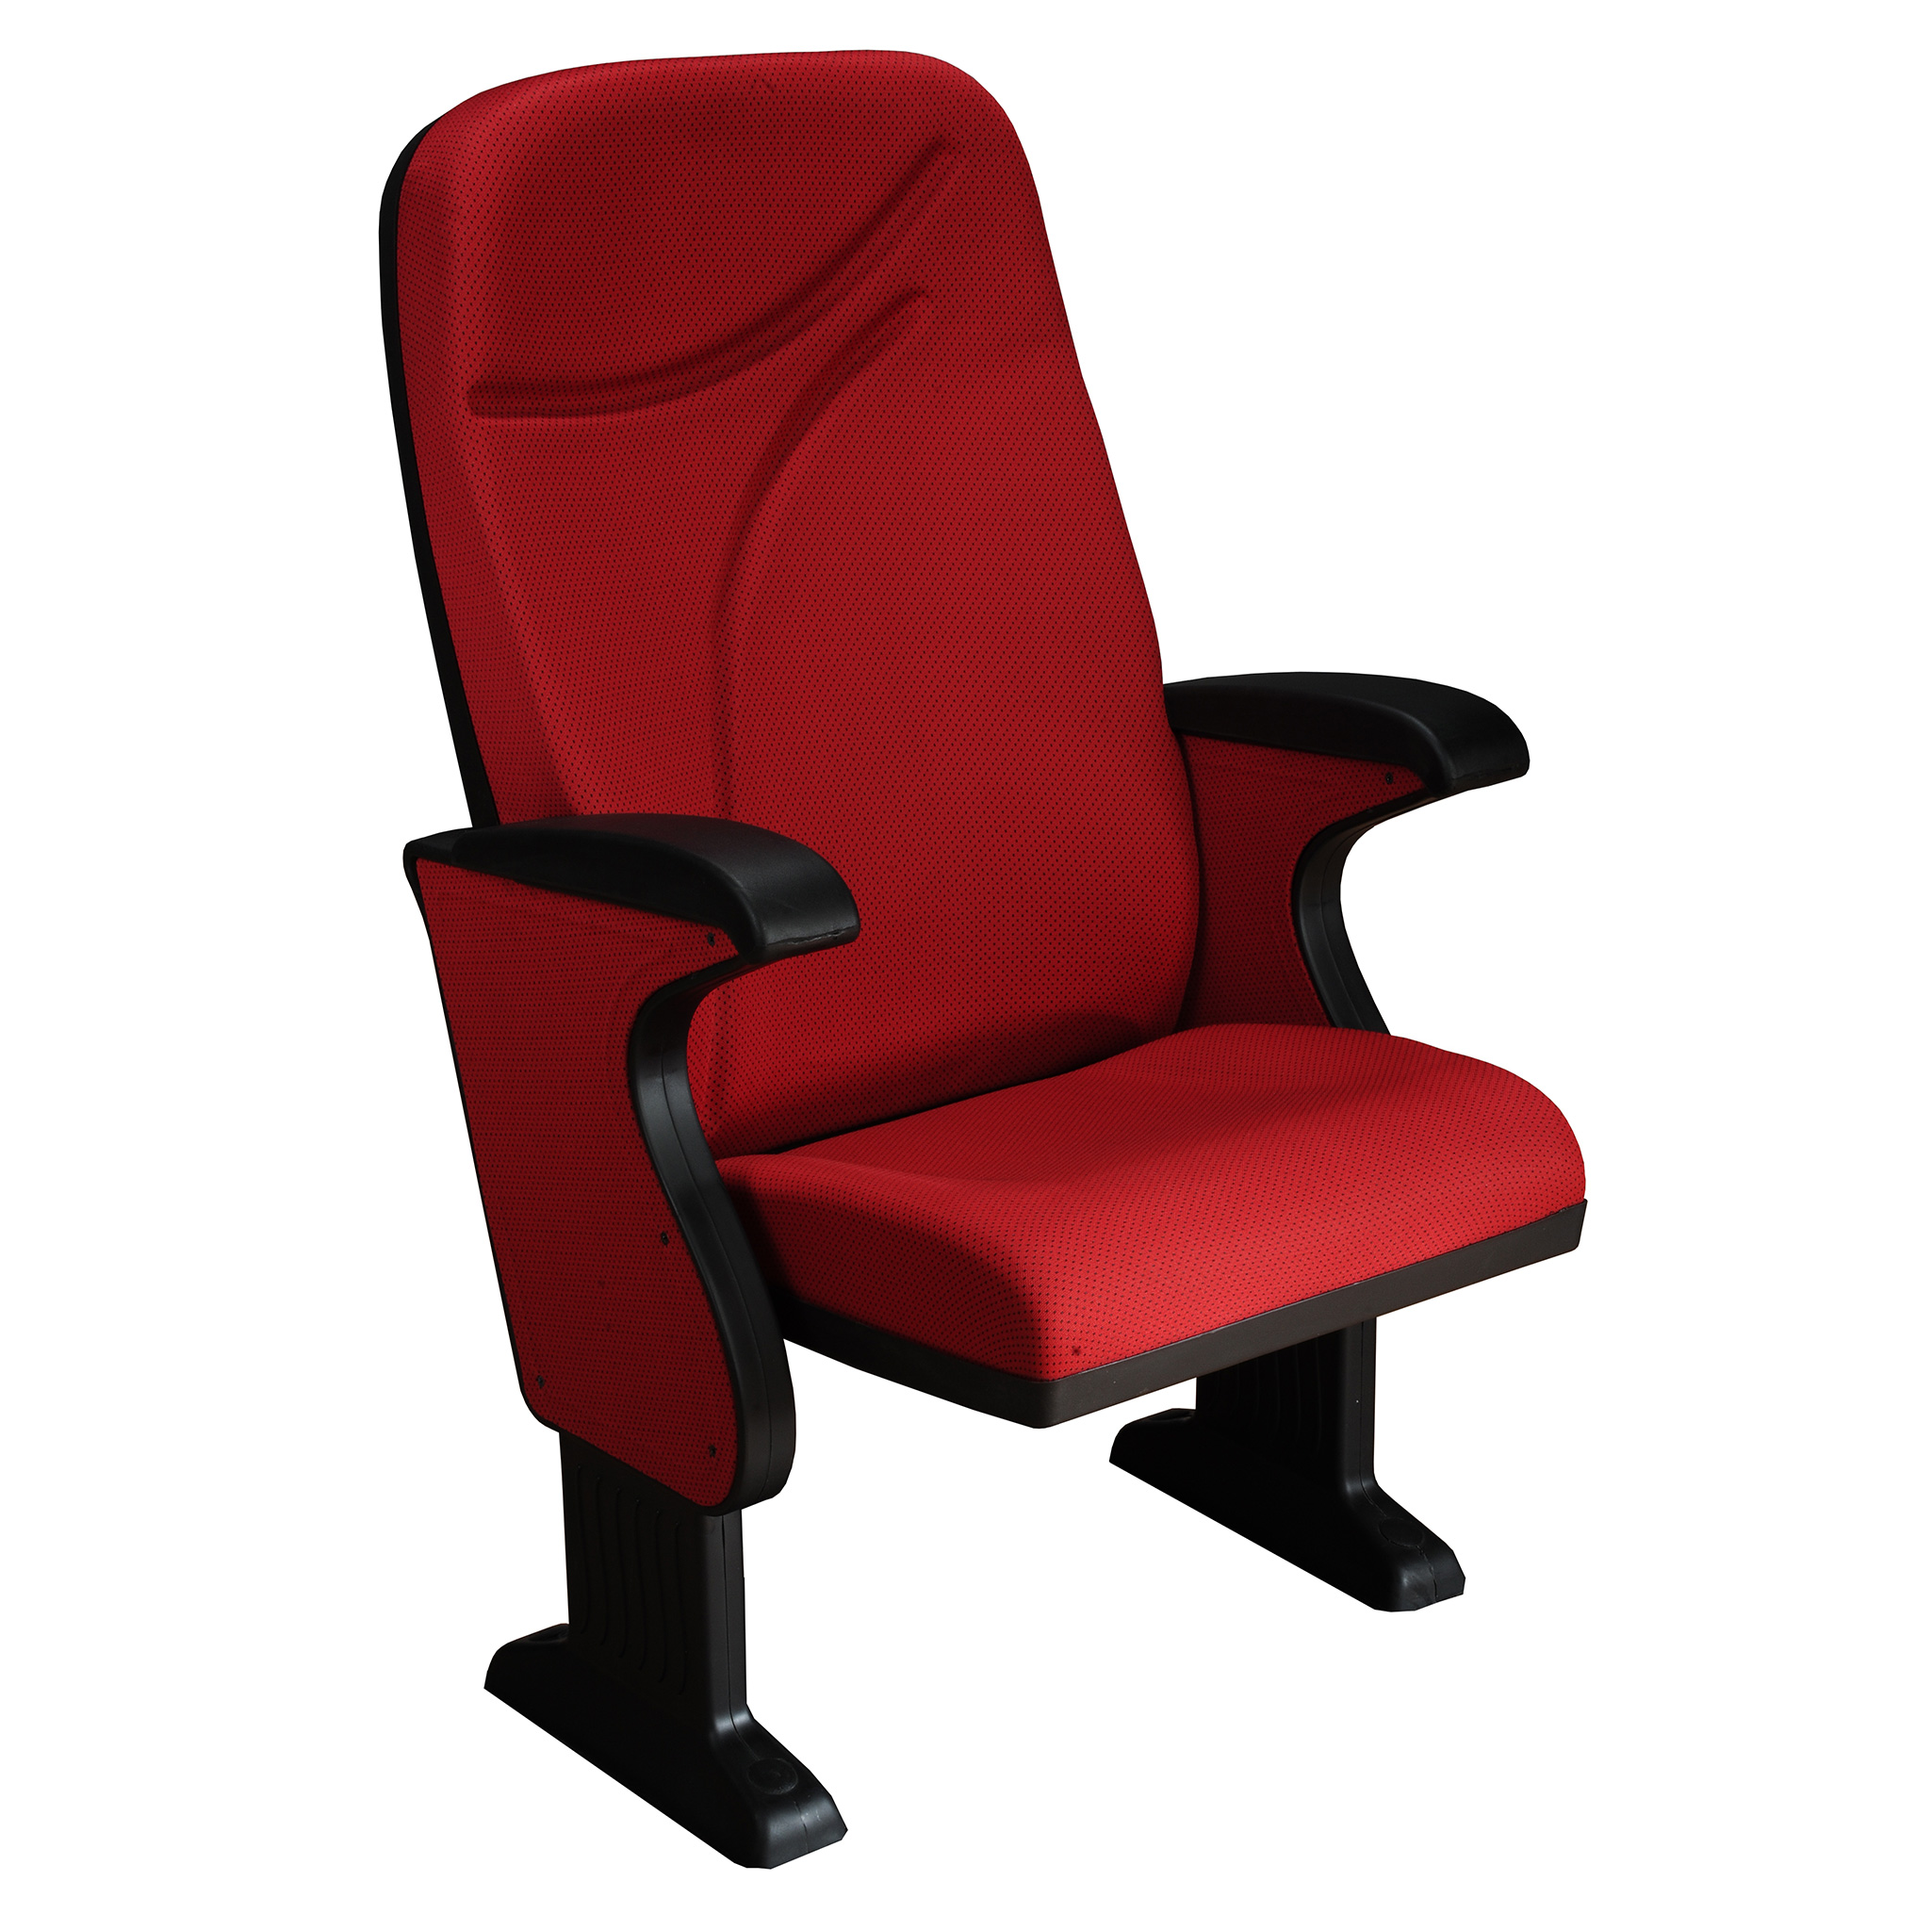 BOLTON P30 - Auditorium, Theatre, Lecture Hall Chair - Turkey - Seatorium - Public Seating Manufacturer